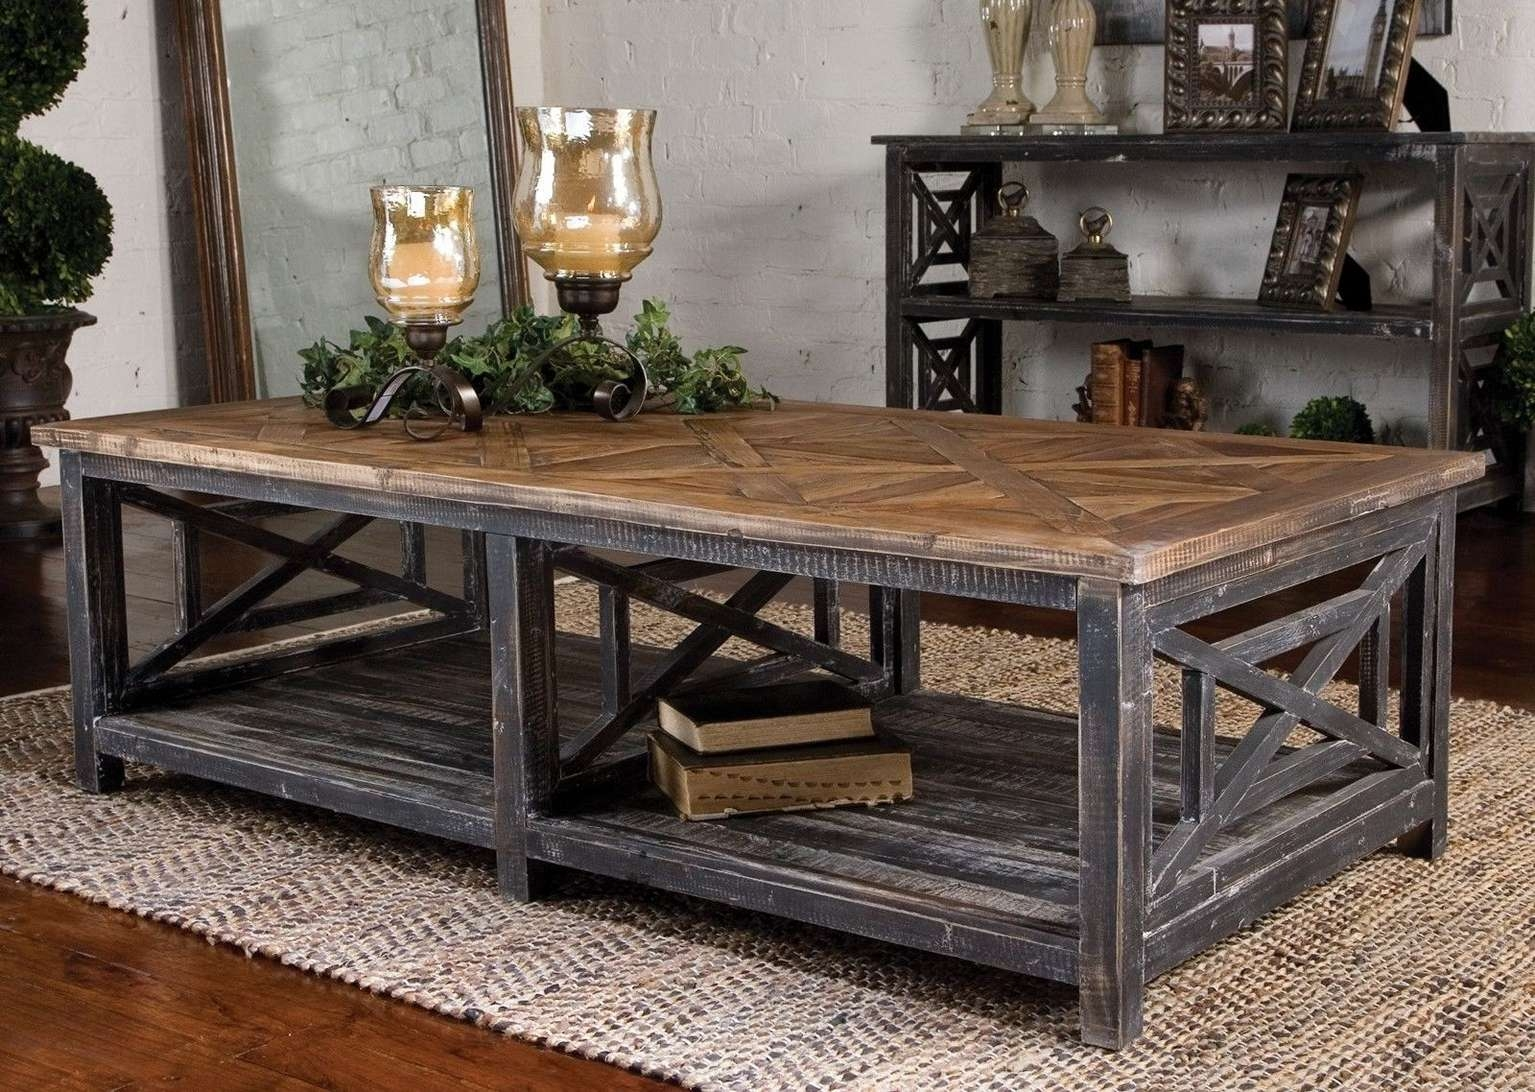 Fantastic Rustic Coffee Tables Decor – Matt And Jentry Home Design With Regard To Best And Newest Rustic Coffee Tables (View 5 of 20)